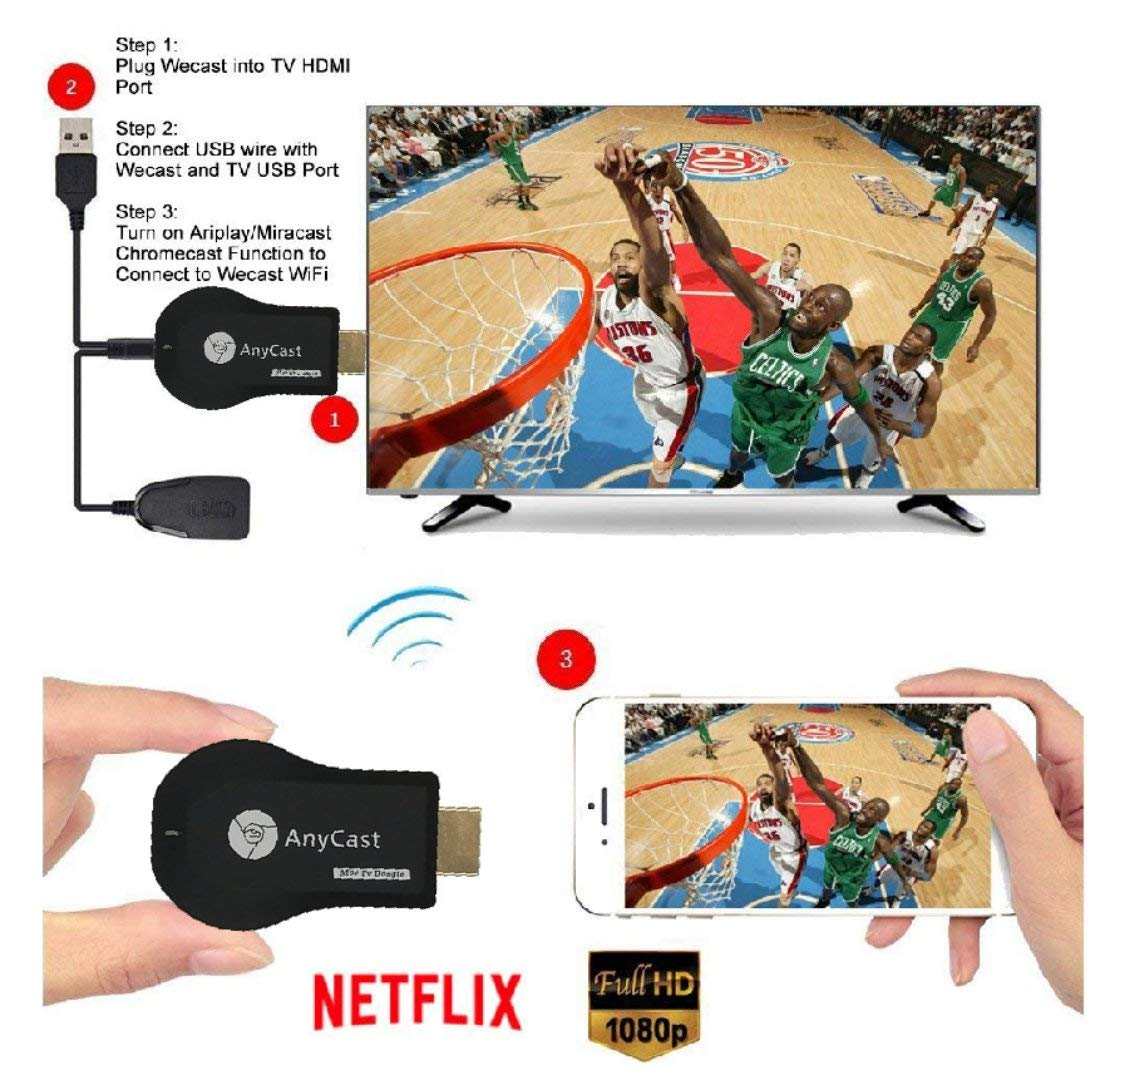 WiFi Wireless Display Dongle 1080P Mini Receiver Sharing HD Video from Projectors Cell Phones Tablet PC Support Airplay/ Chromecast/Chromecast Tv/Miracast/Miracast Dongle for Tv by Colorful lucky (Image #6)